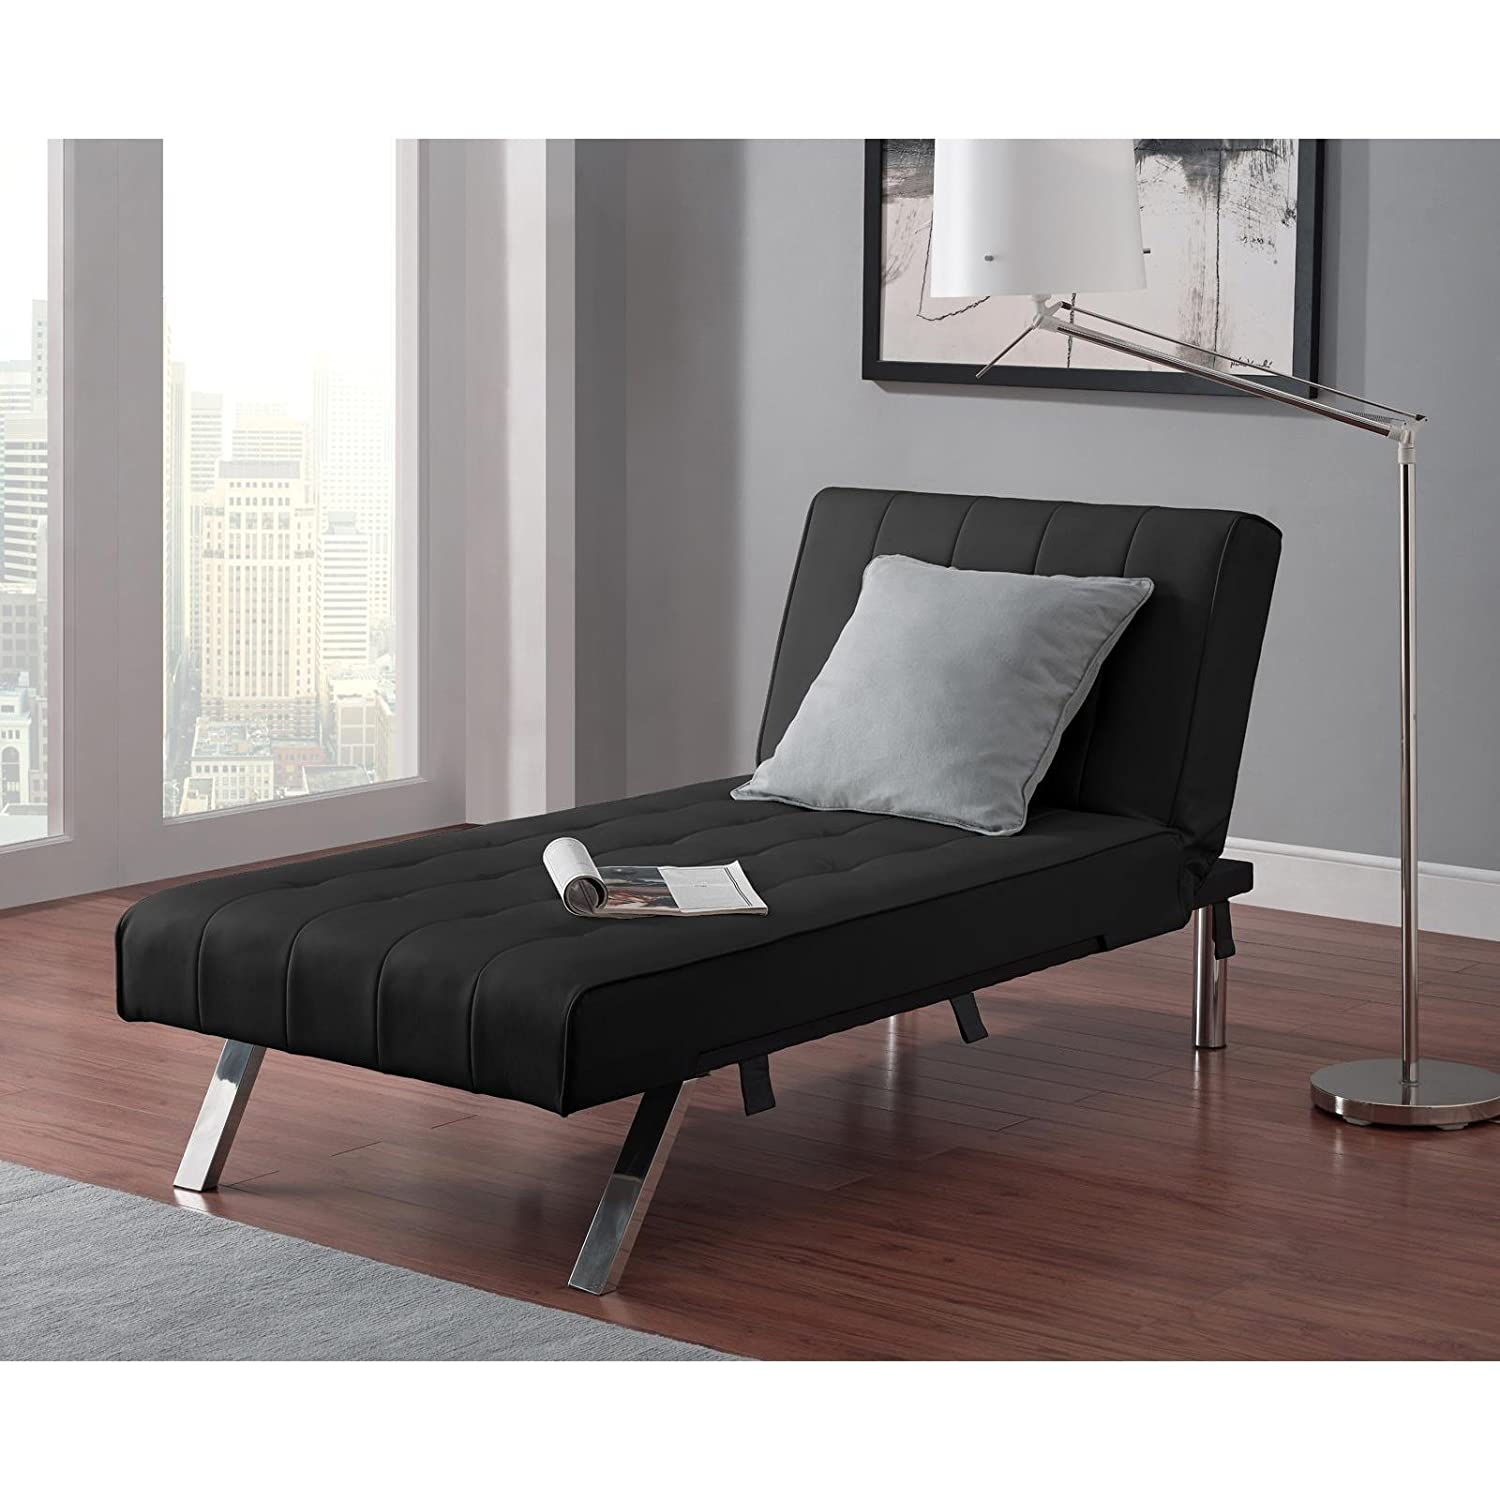 shop futon lounge dhp black furniture emily roselawnlutheran futons chaise